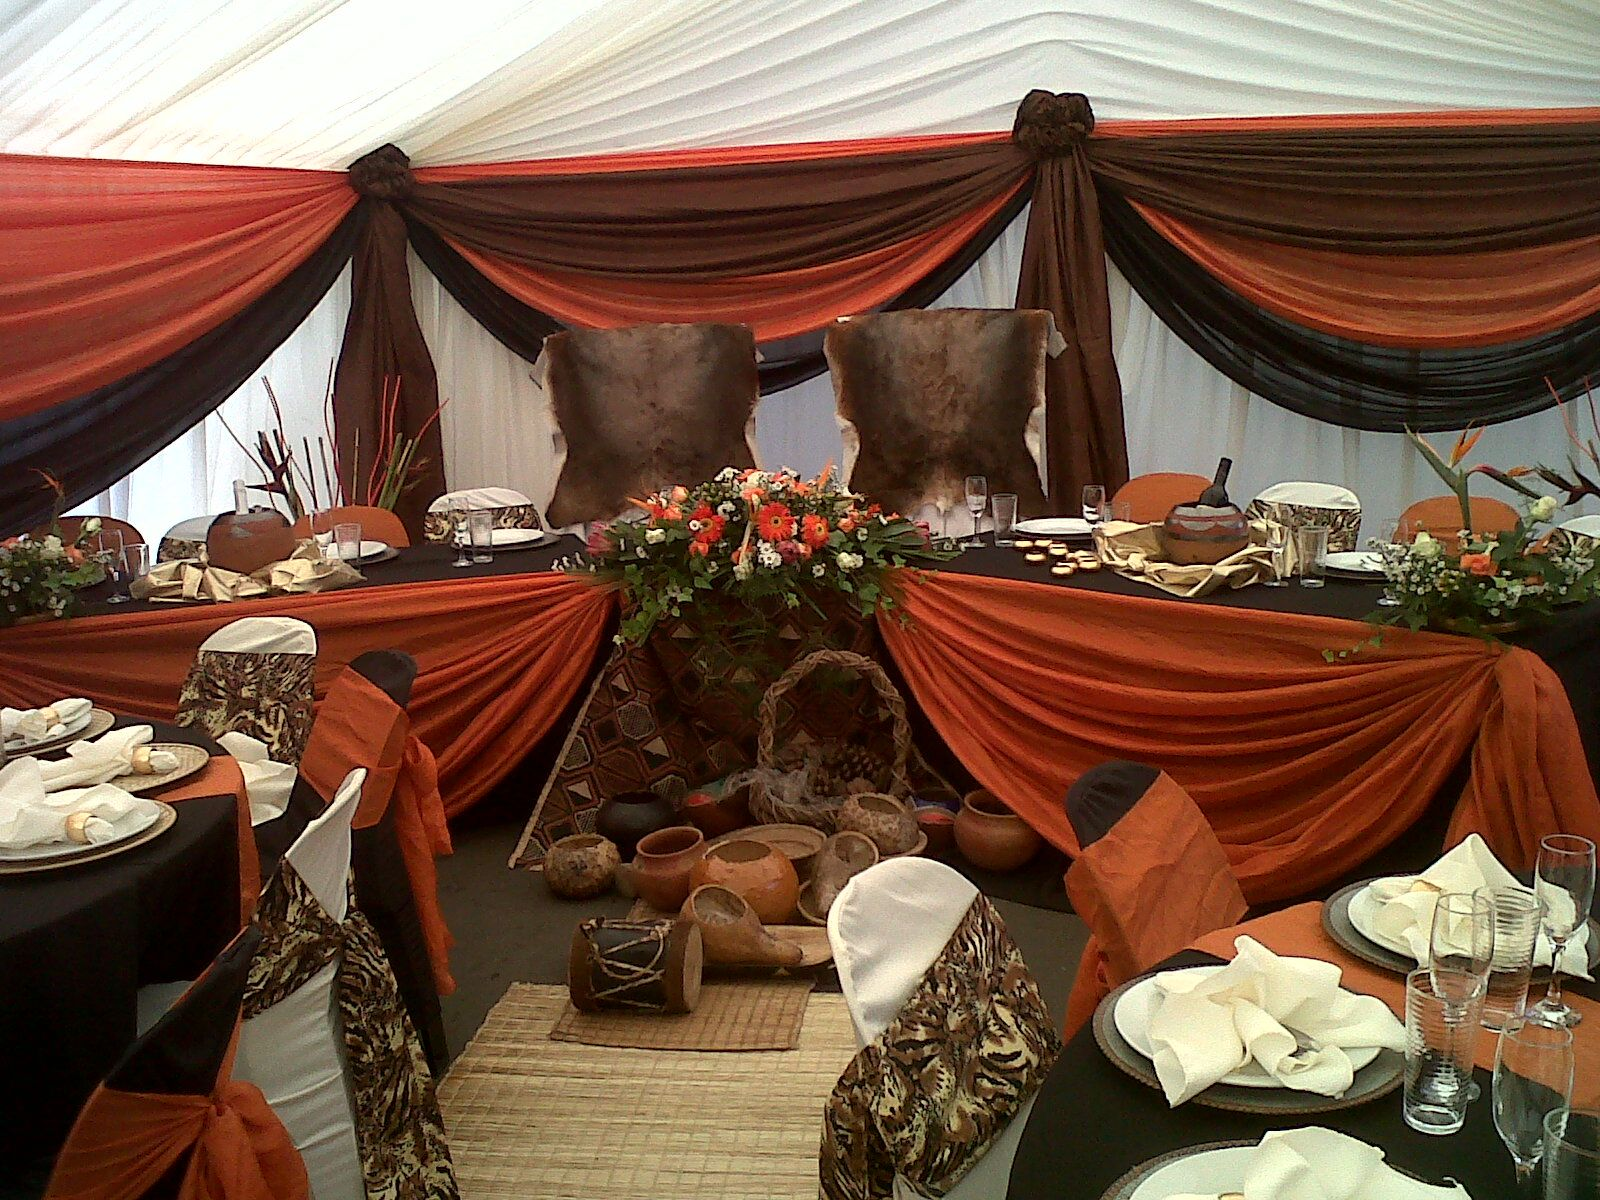 zulu wedding decor pictures - Google Search | Traditional ...